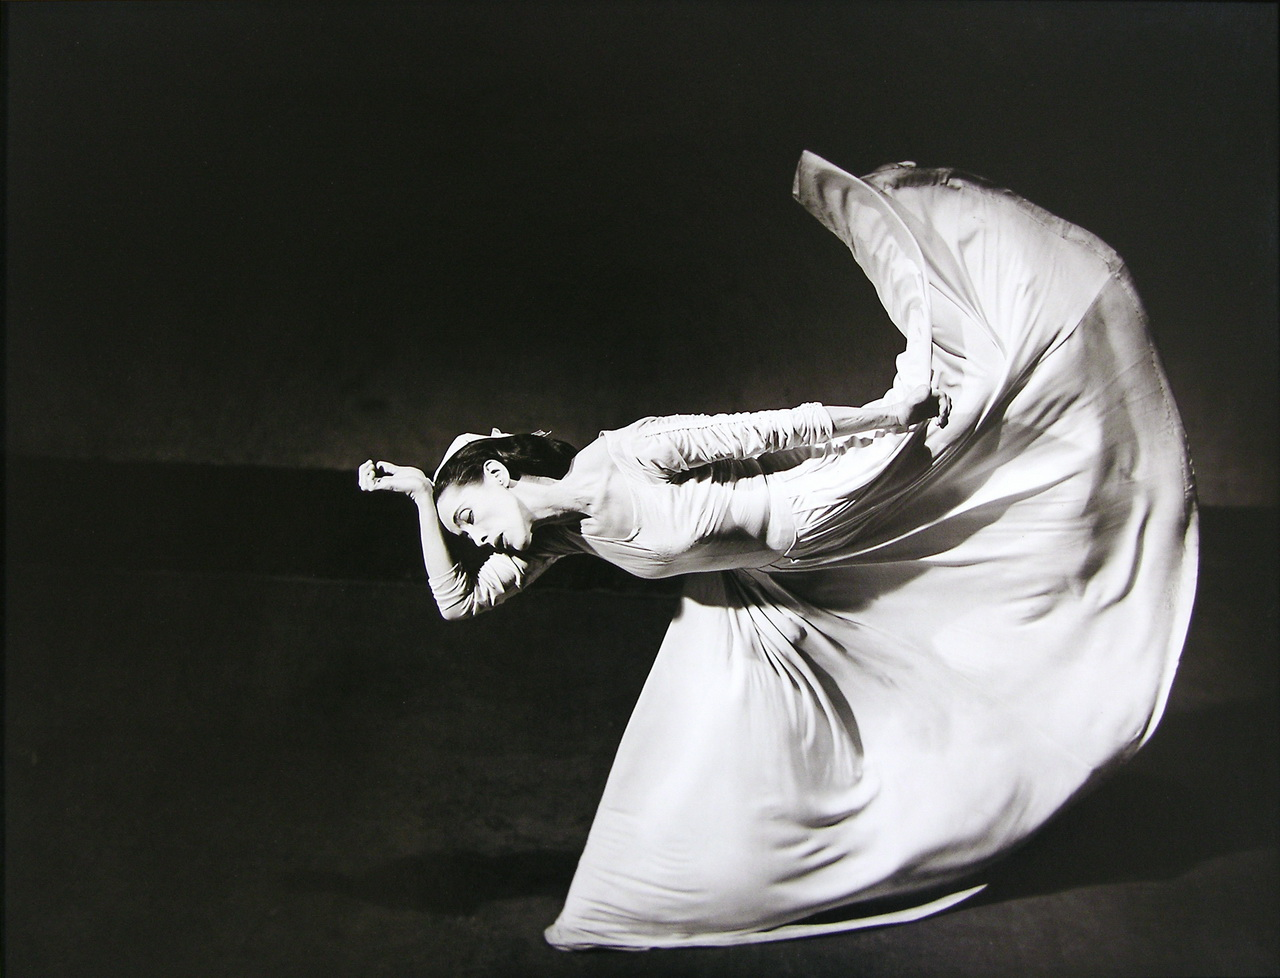 Barbara Morgan,  Martha Graham, Letter to the World , 1940/1984, Gelatin silverprint, Purchased by the Art Resource Trust, Polk Museum of Art Permanent Collection 2005.1.1 © Barbara Morgan, The Barbara Morgan Archive.